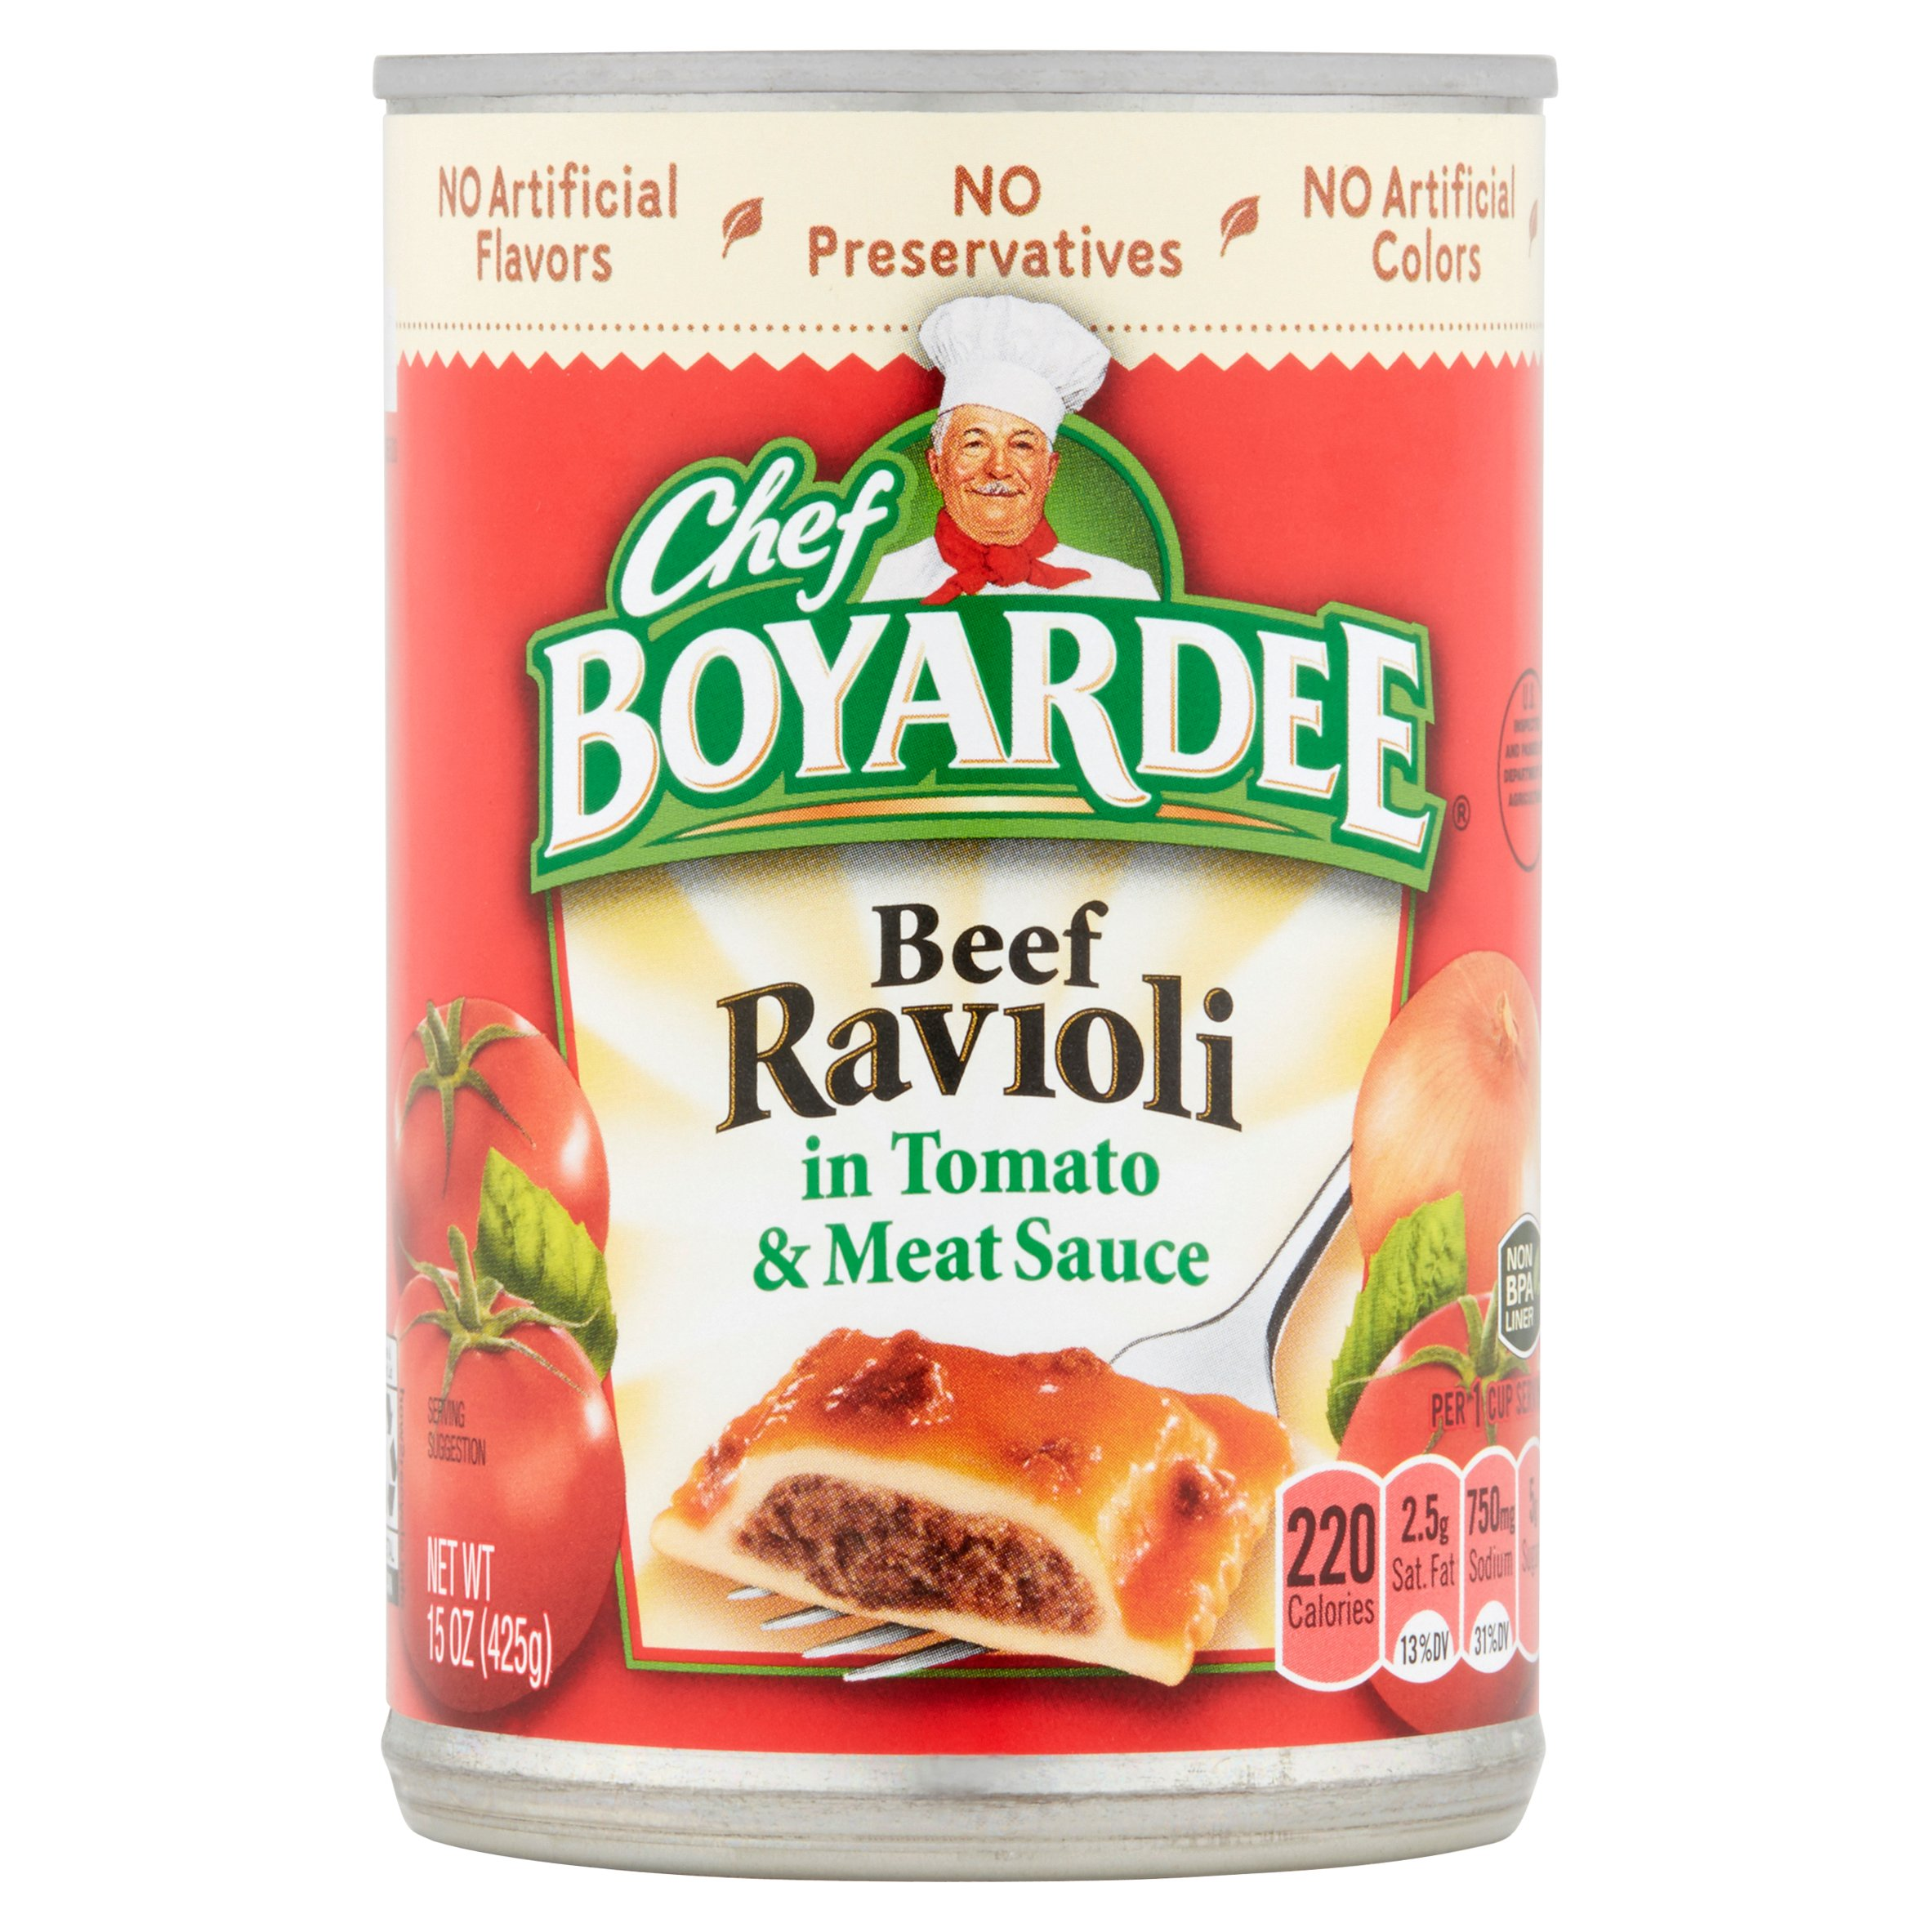 Chef Boyardee Beef Ravioli in Tomato & Meat Sauce 15oz by ConAgra Foods®